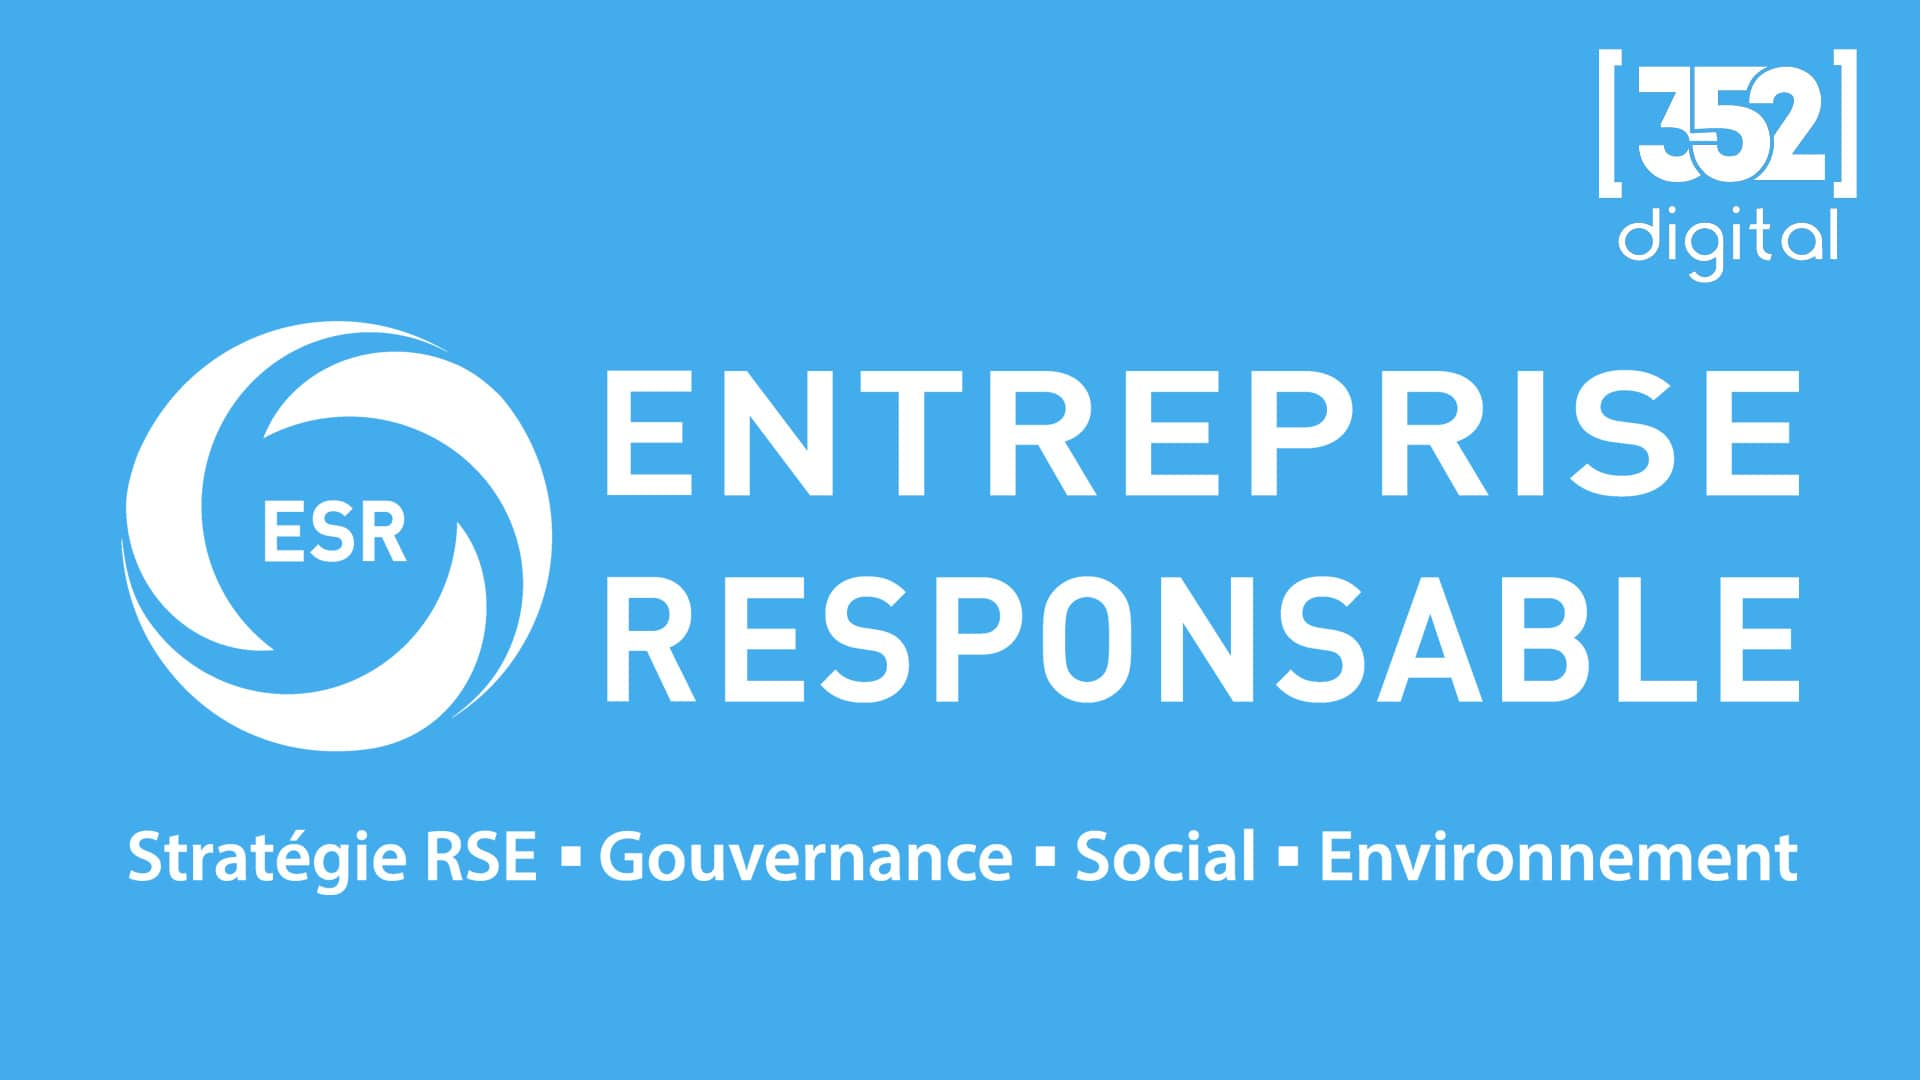 Socially Responsible Business Accreditation